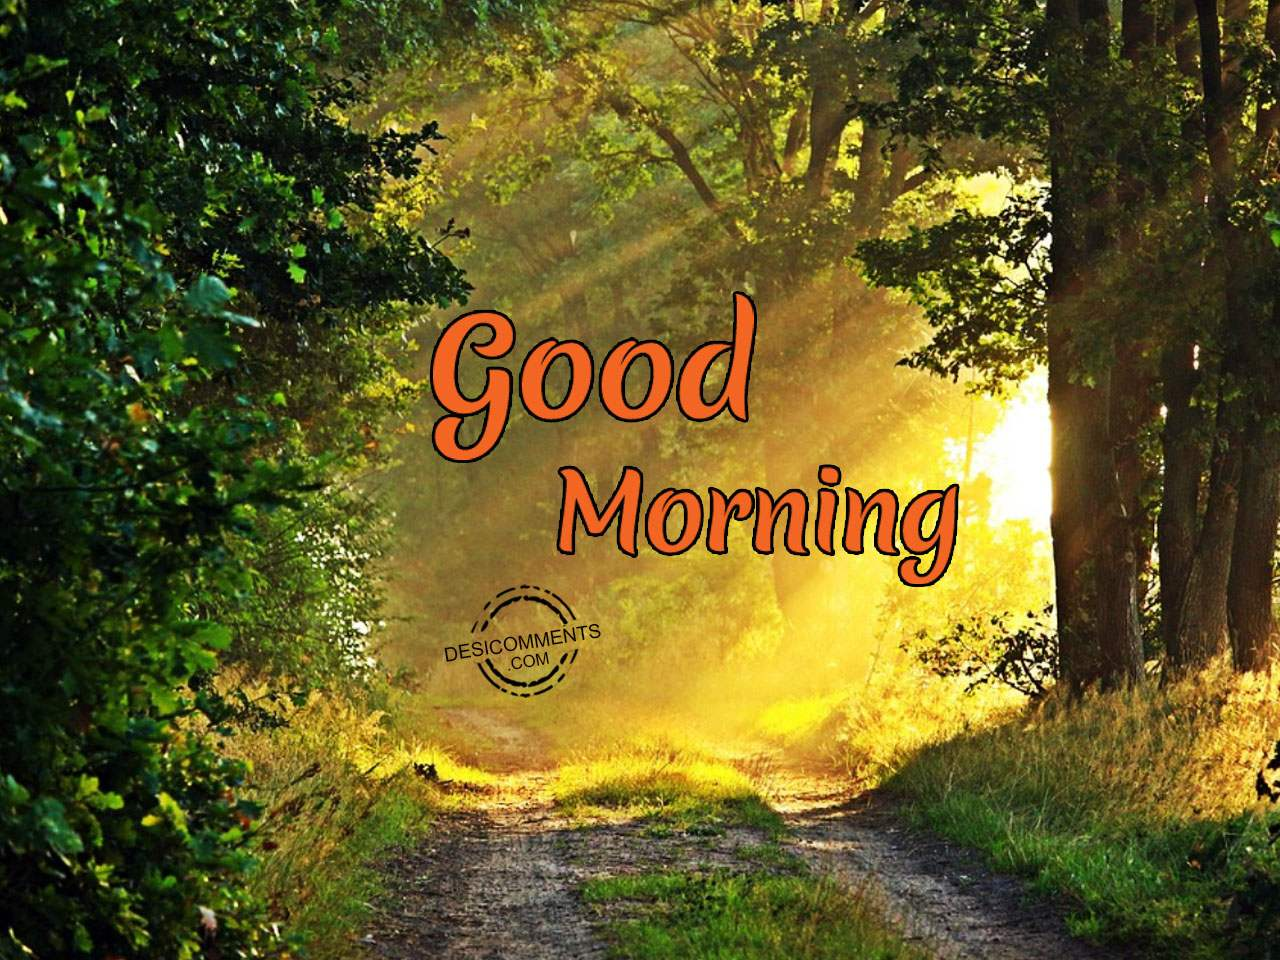 Good morning pictures images graphics page 14 for Good comments on pic